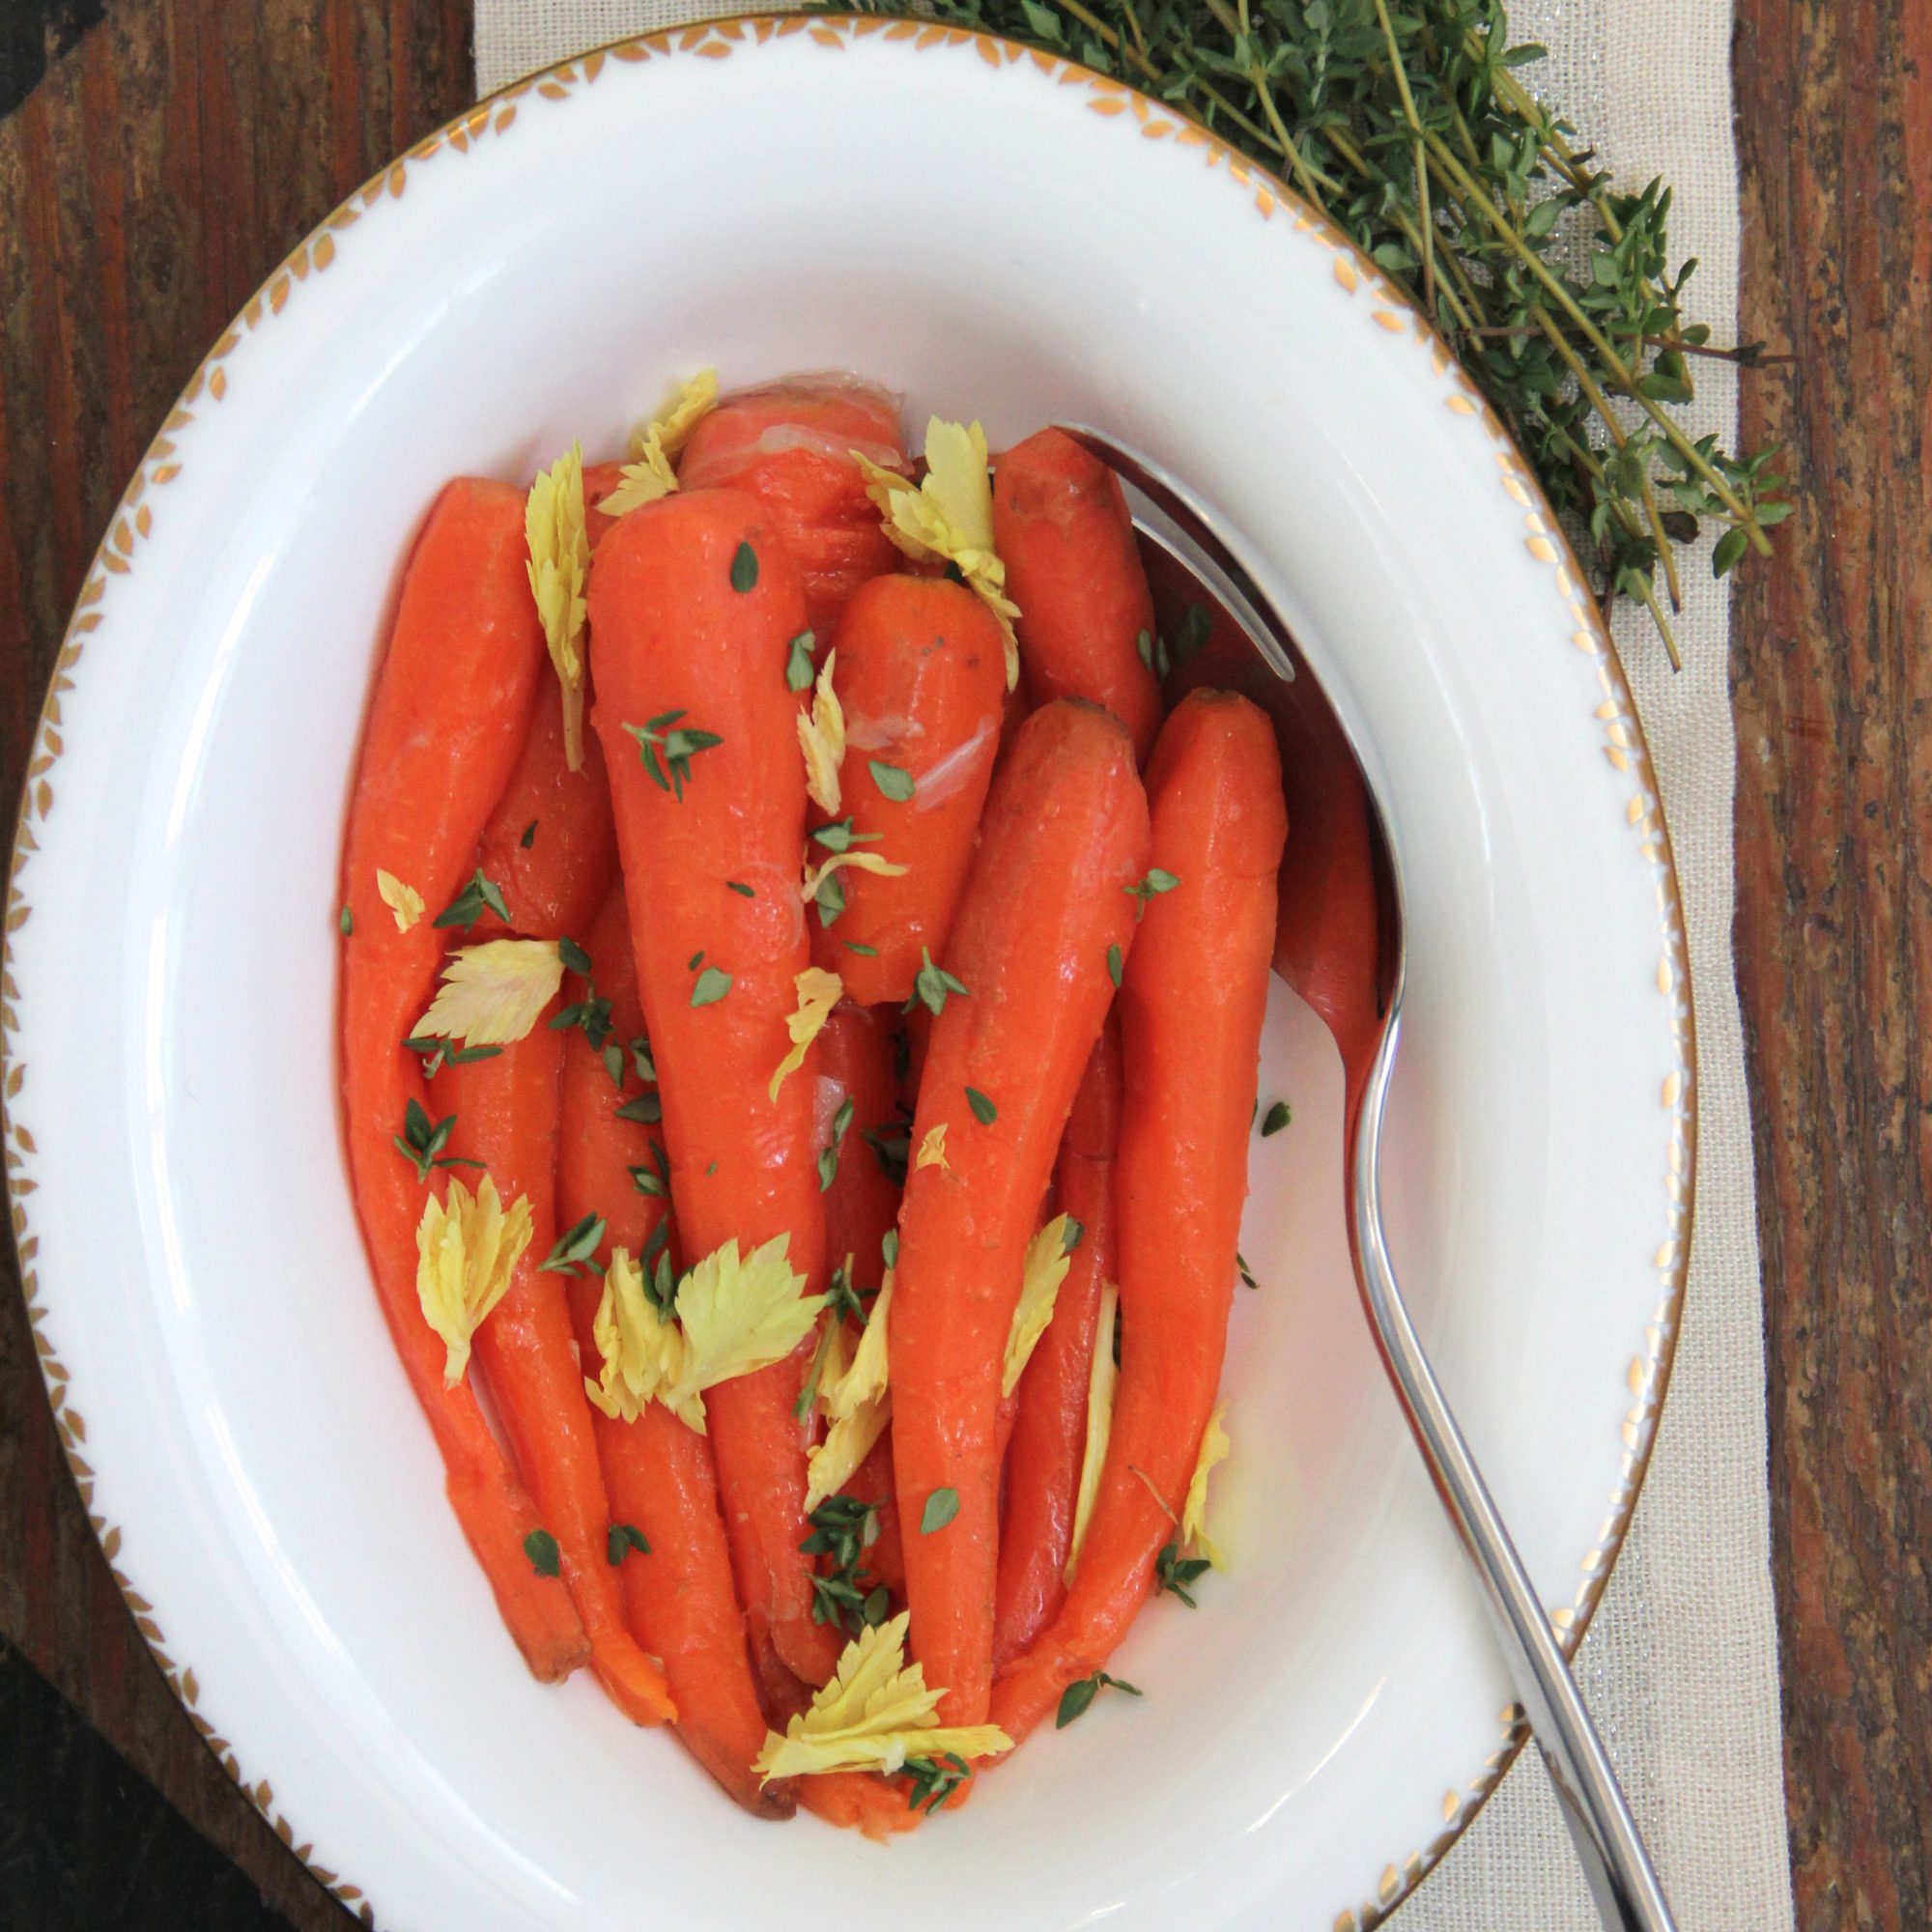 Irish Buttered Carrots